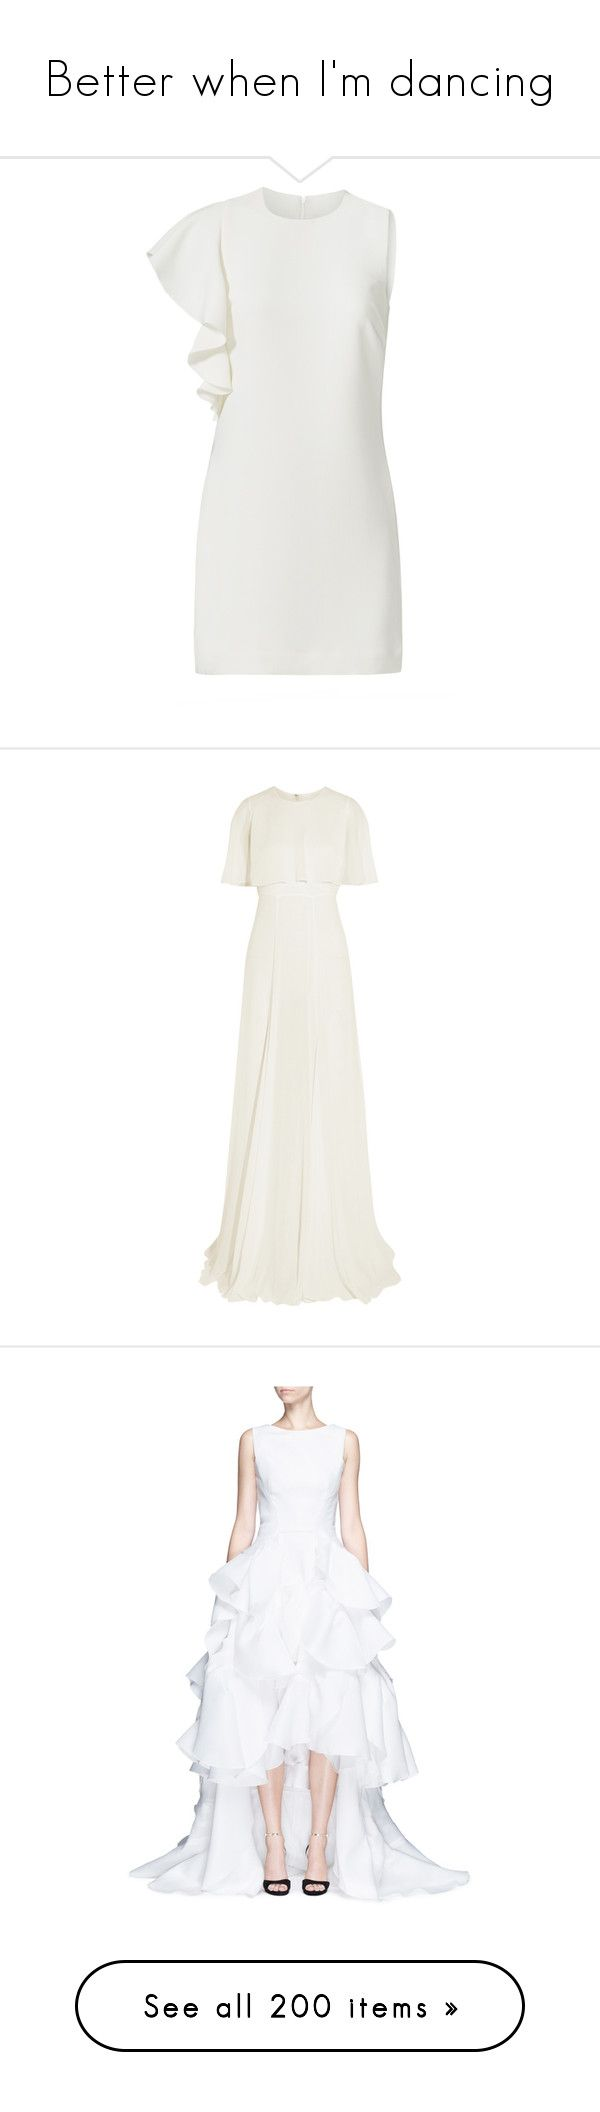 """Better when I'm dancing"" by skh-siera18 ❤ liked on Polyvore featuring dresses, white, no sleeve dress, white dresses, white frilly dress, white ruffle dress, ruffle dress, gowns, giambattista valli and vestidos"